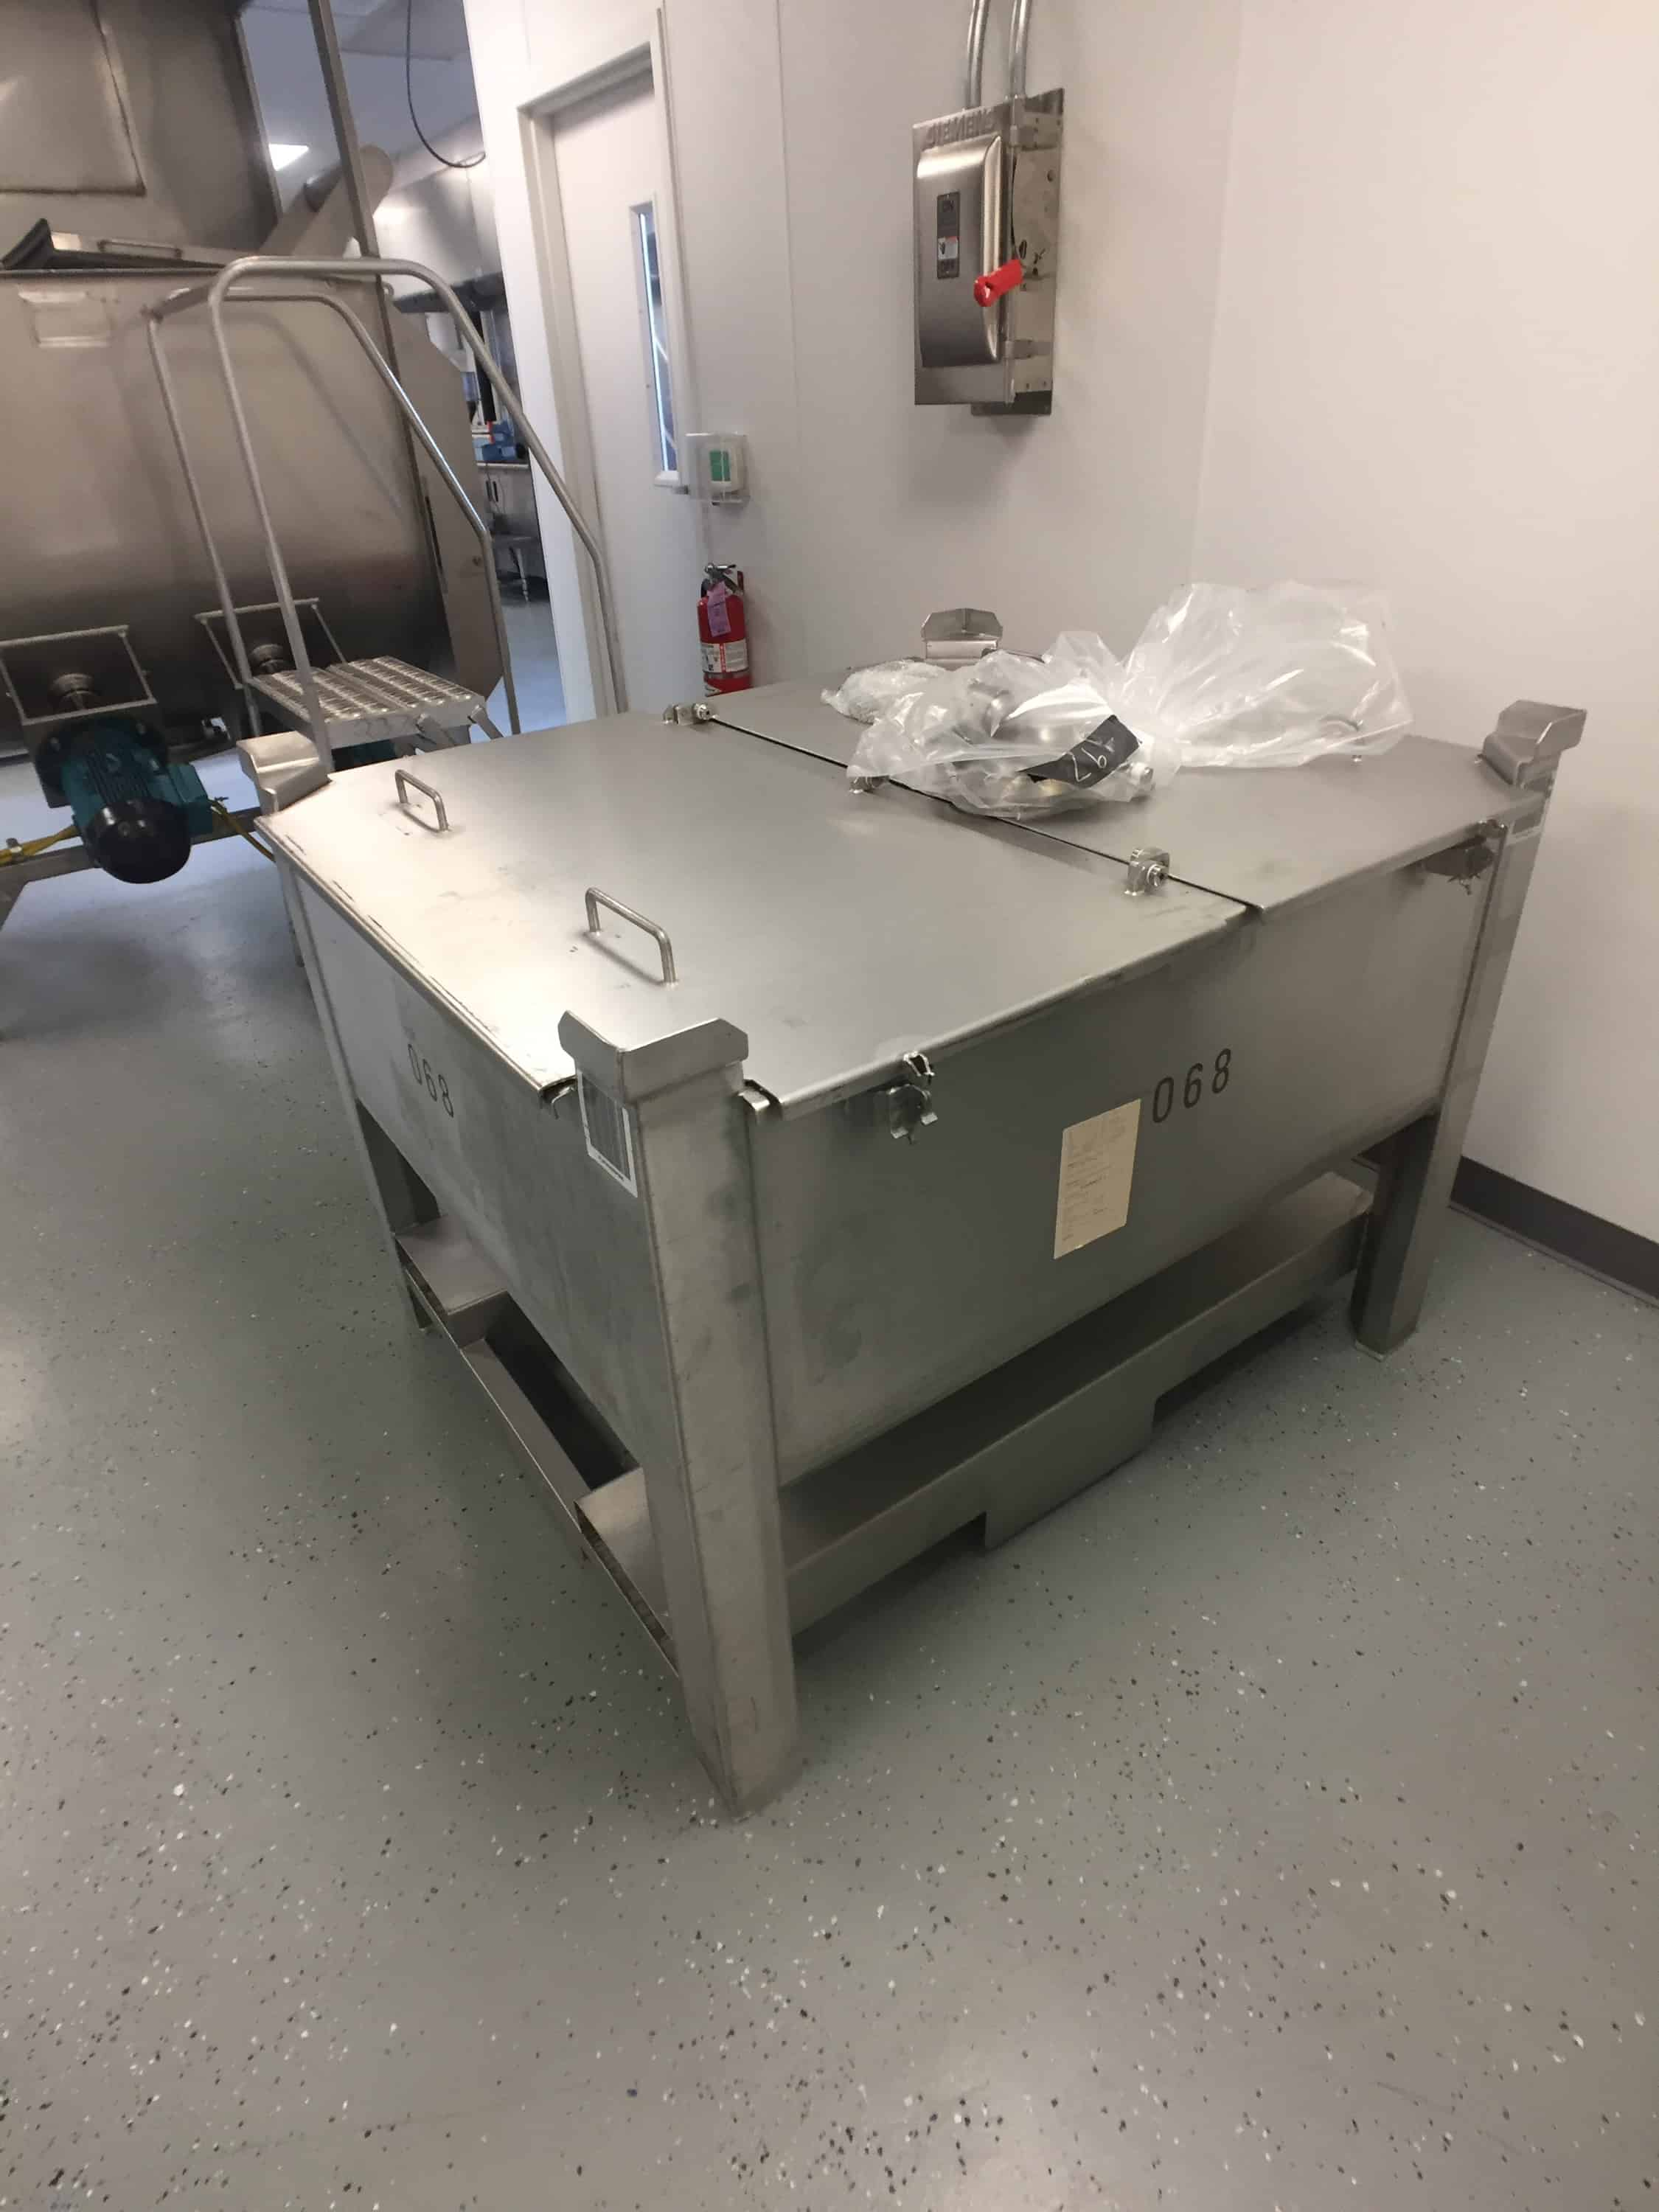 """(4) Stainless Steel Process Solutions Totes, 20 cu. Ft., Sanitary Butterfly valve, Dimensions 43""""x 49""""x37""""  Stainless Steel 25 cu ft. Portable Hopper on Casters"""